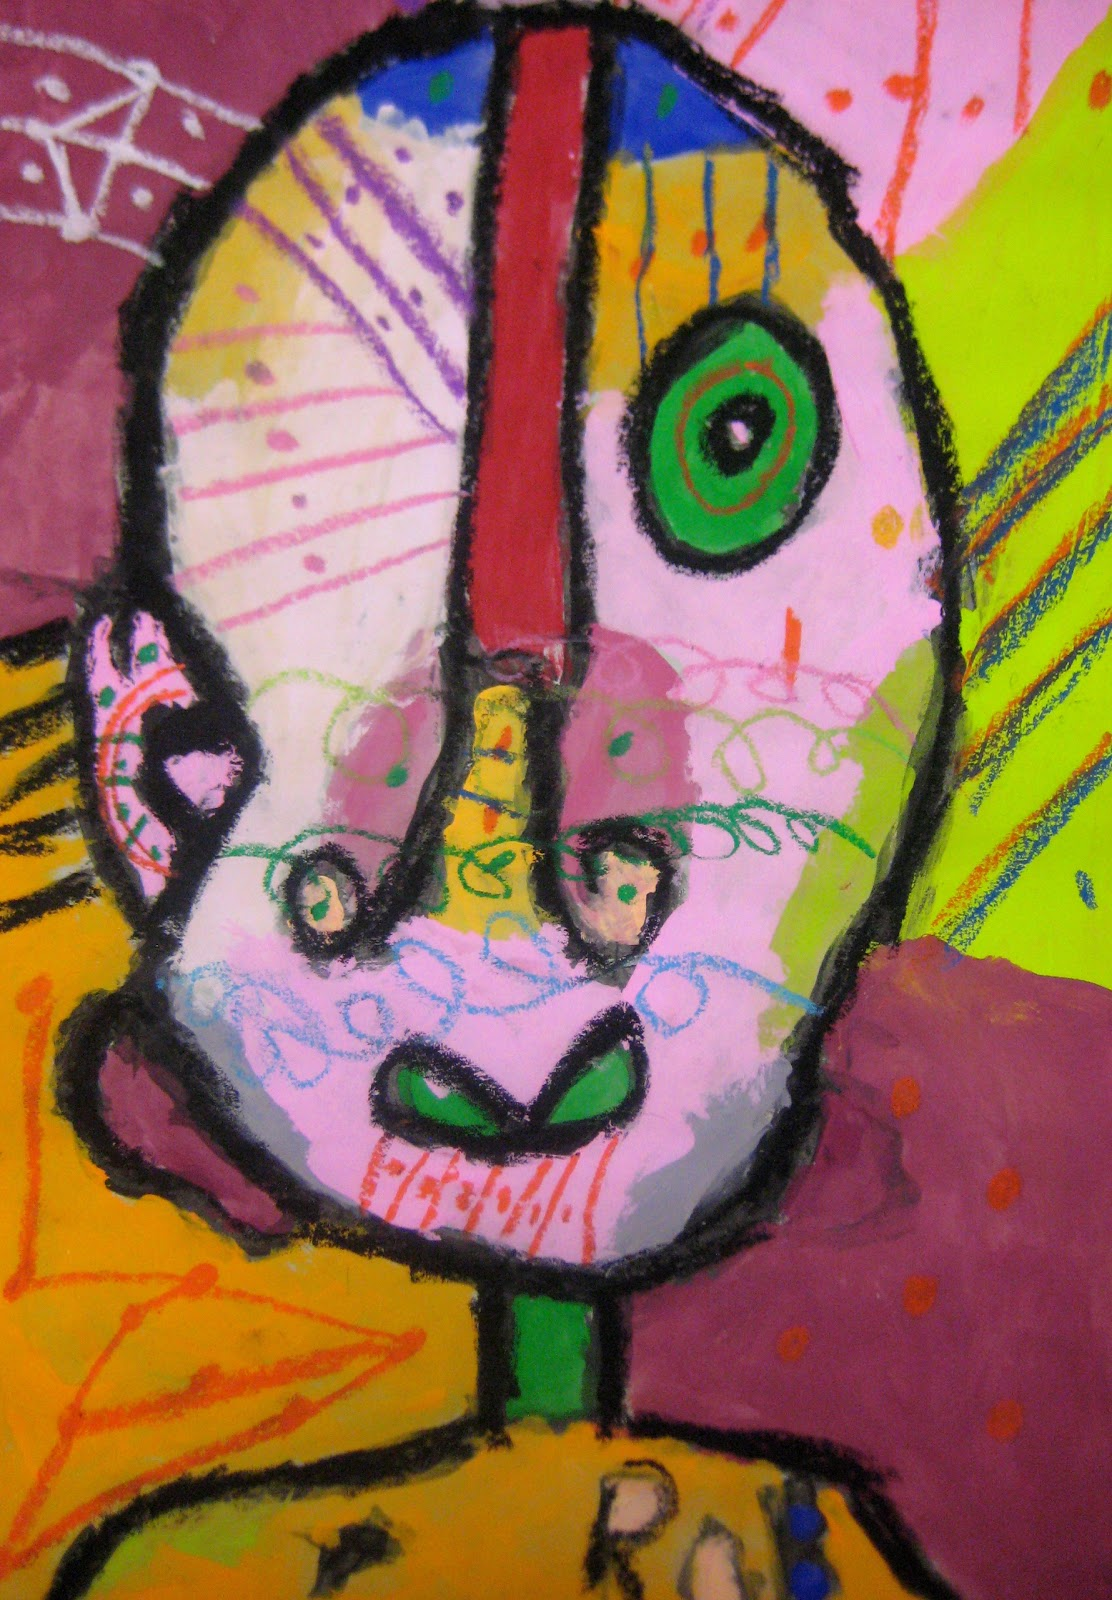 Experiments in Art Education: Abstract Portraits